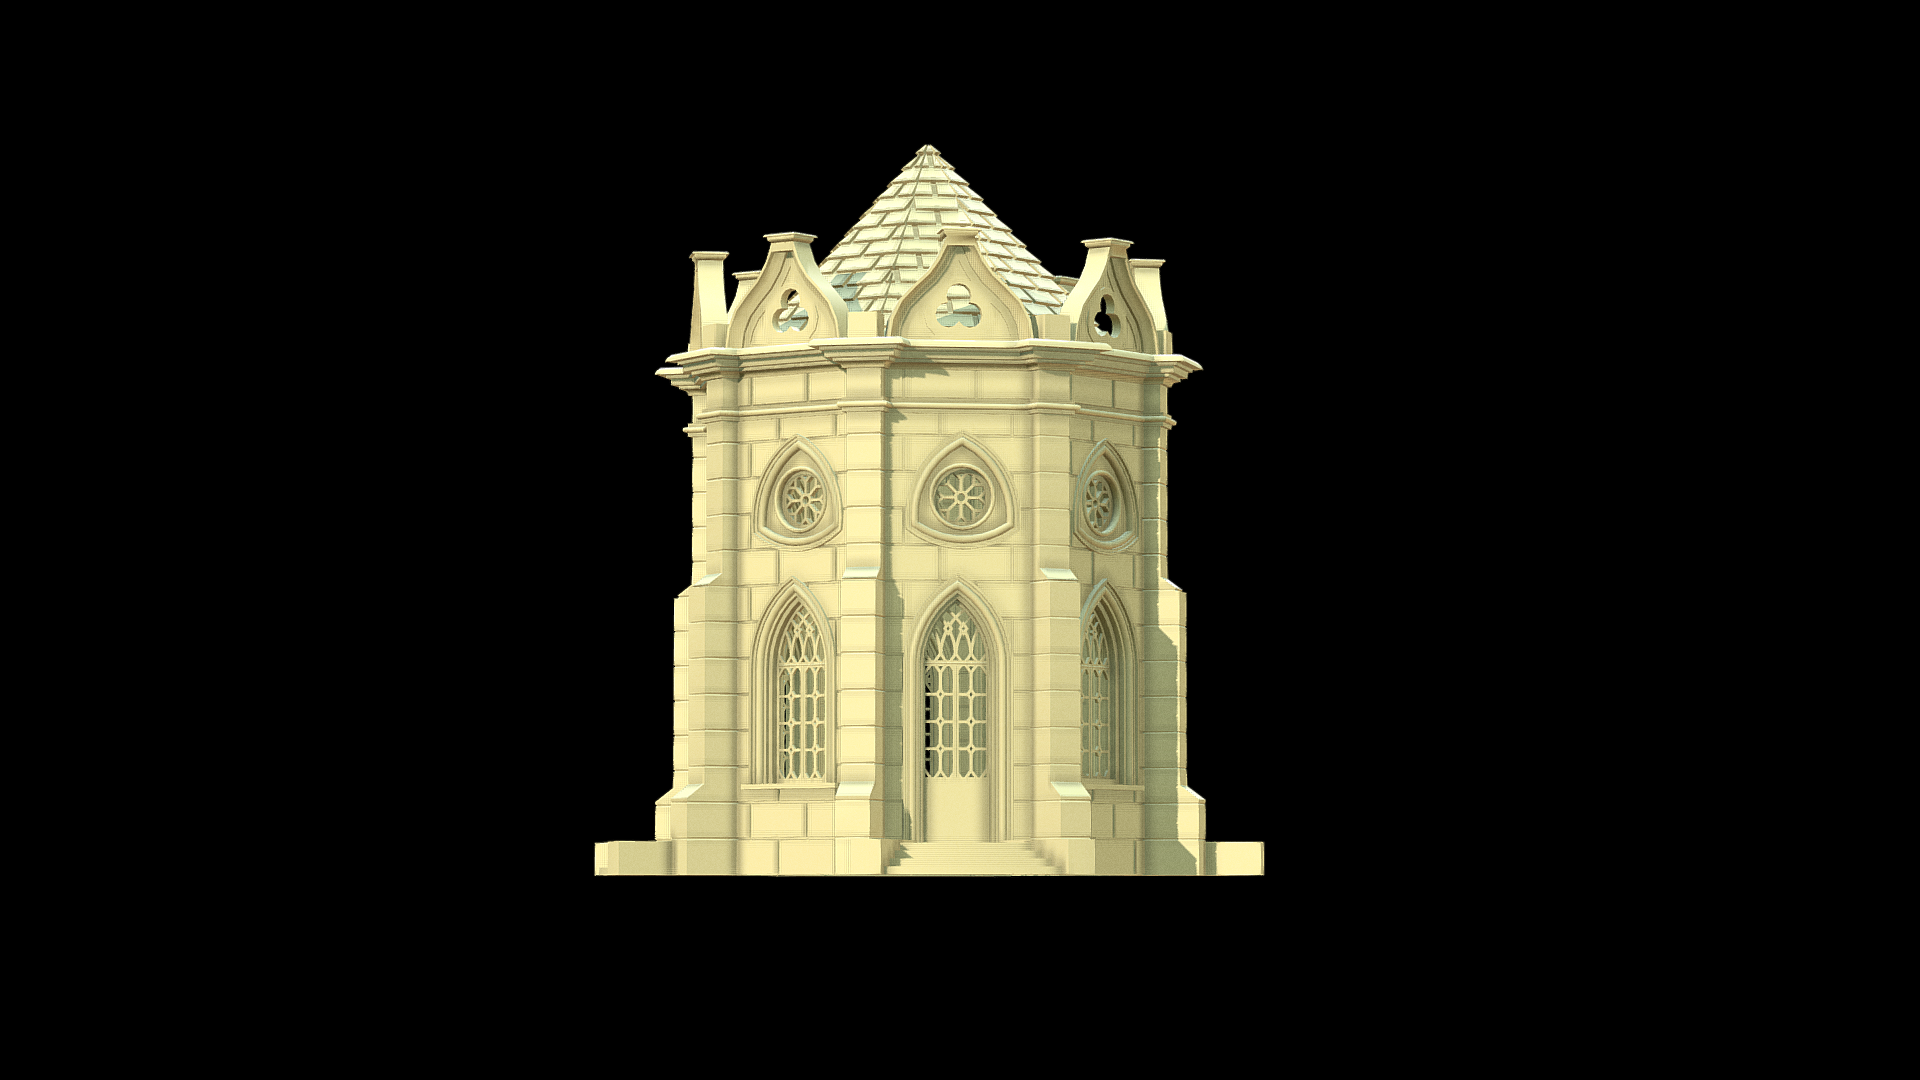 Gothic building 28mm scale